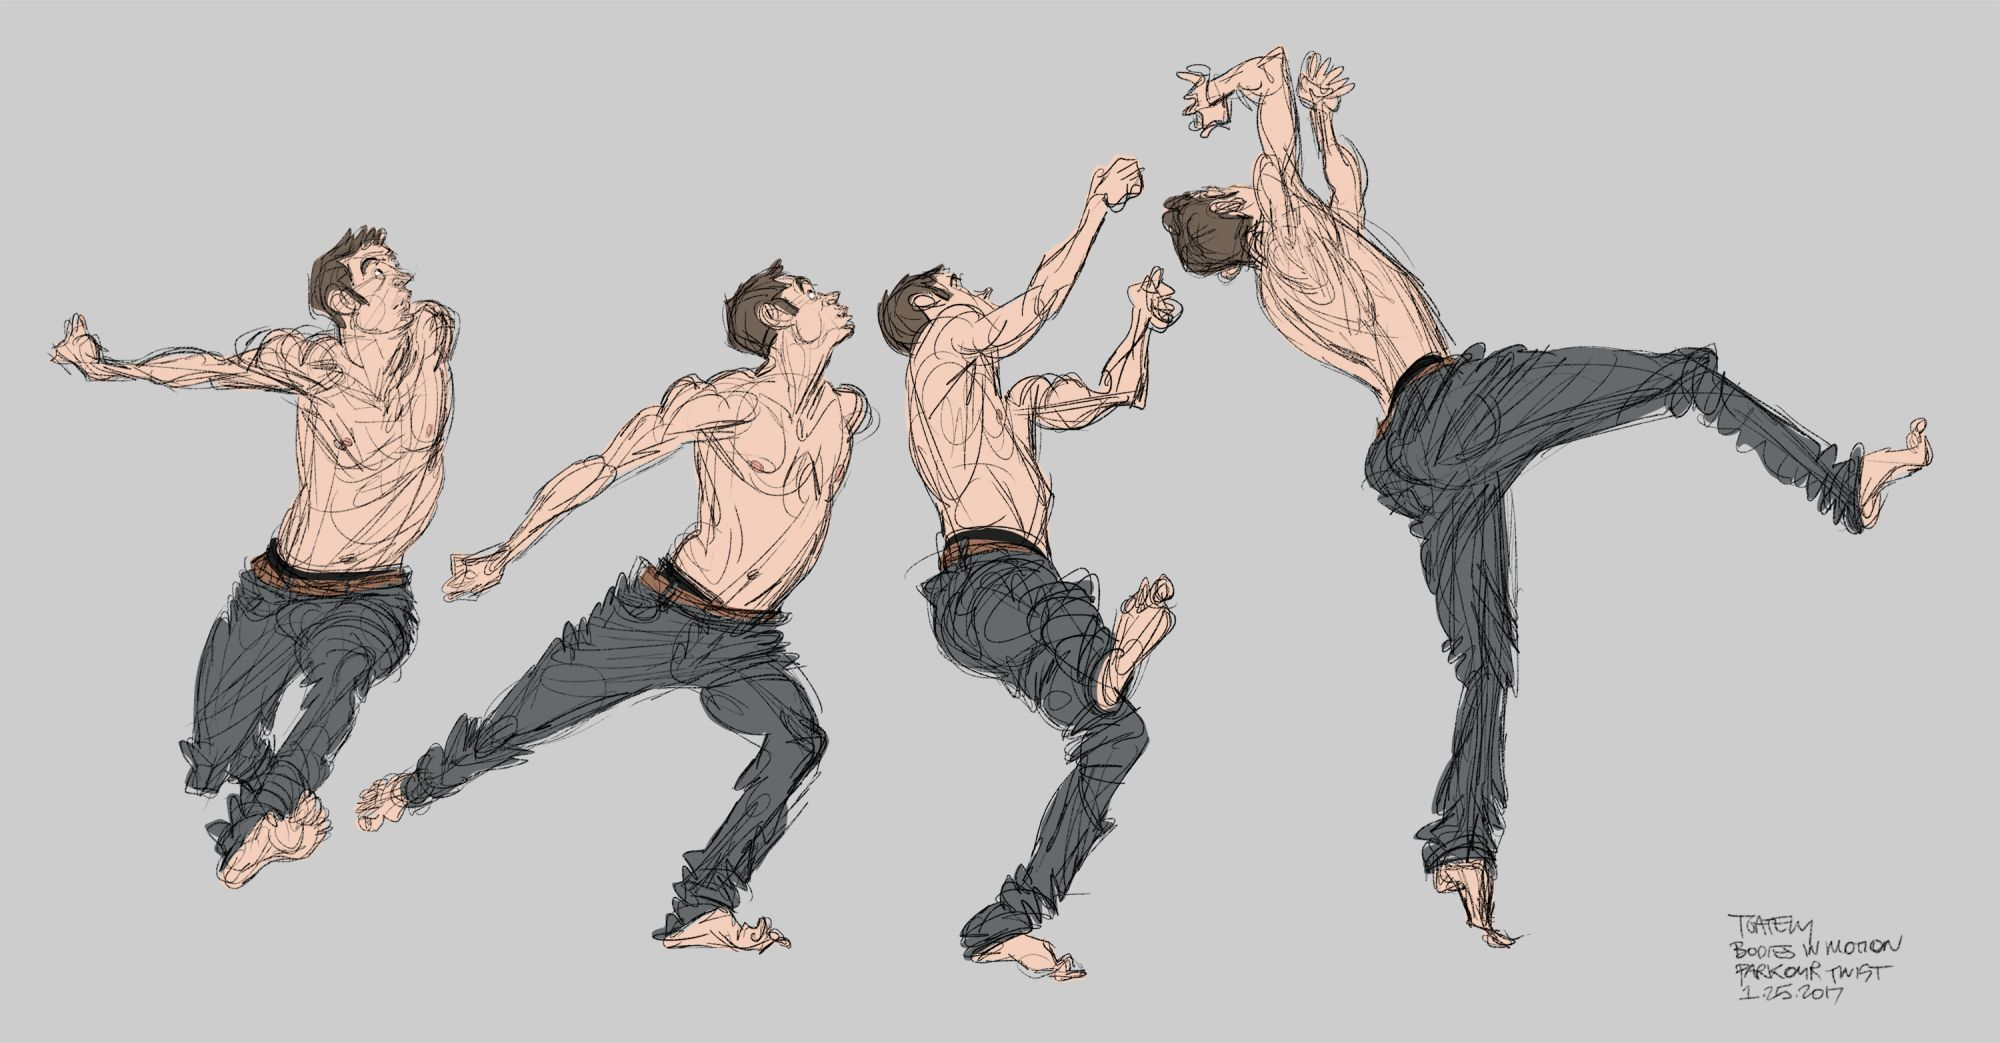 Parkour Twist Scott Eaton 39 S Bodies In Motion Animated Drawings Art Reference Poses Art Poses